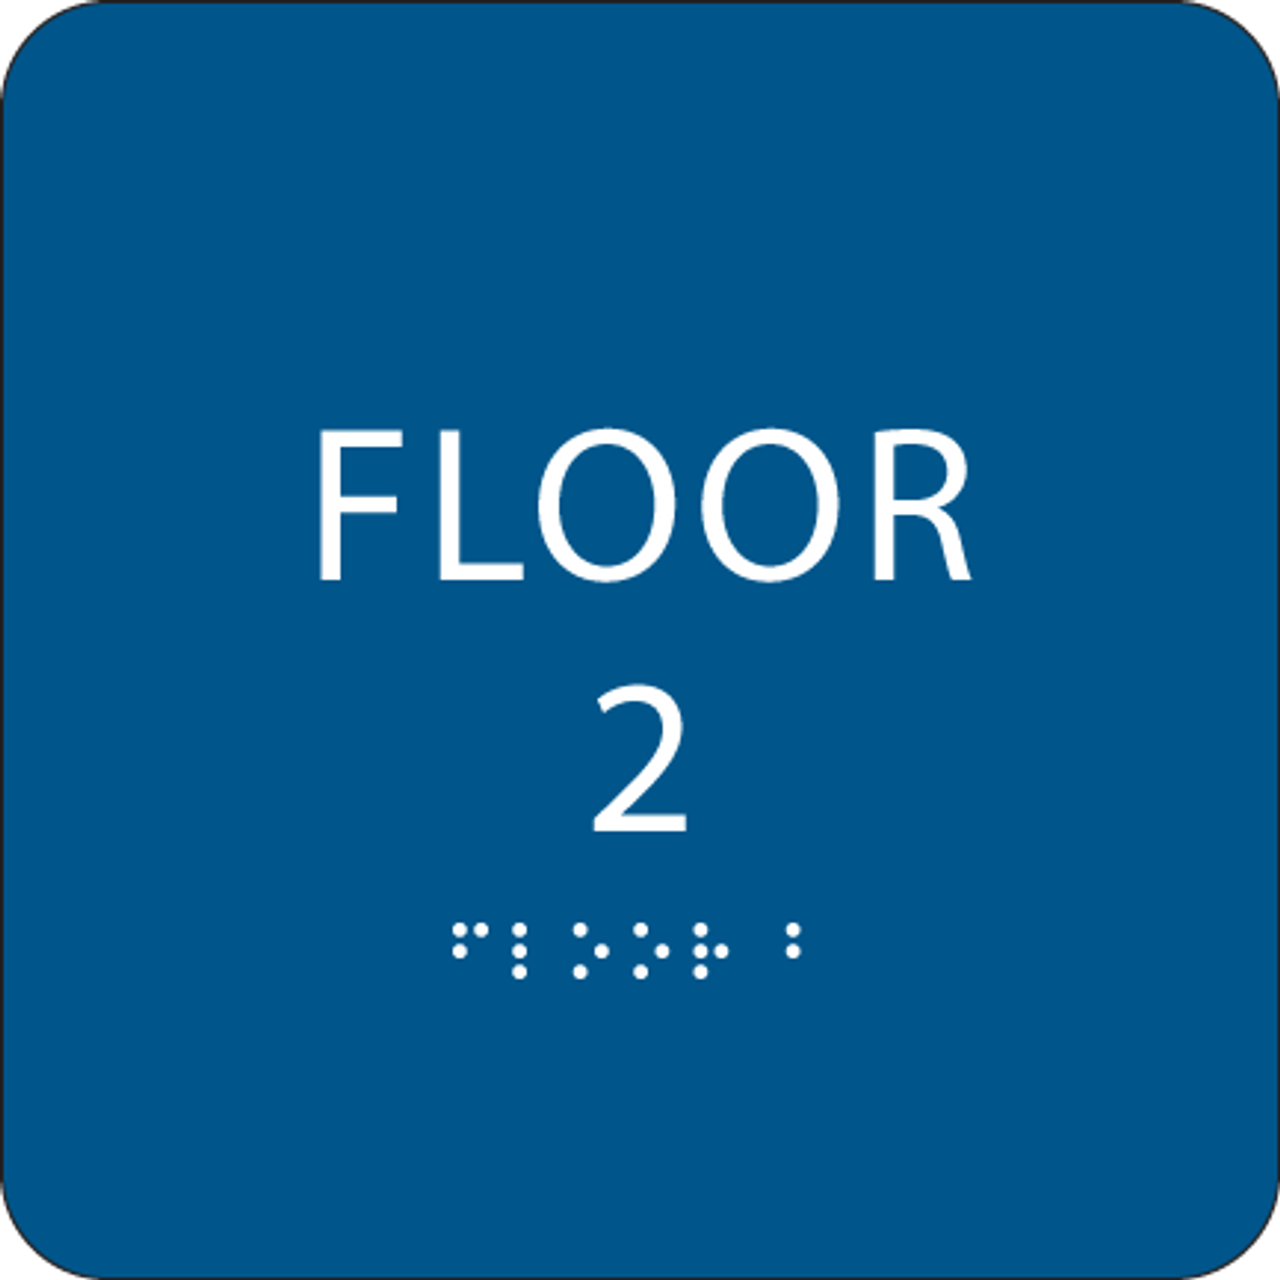 Blue Floor 2 Identification Sign